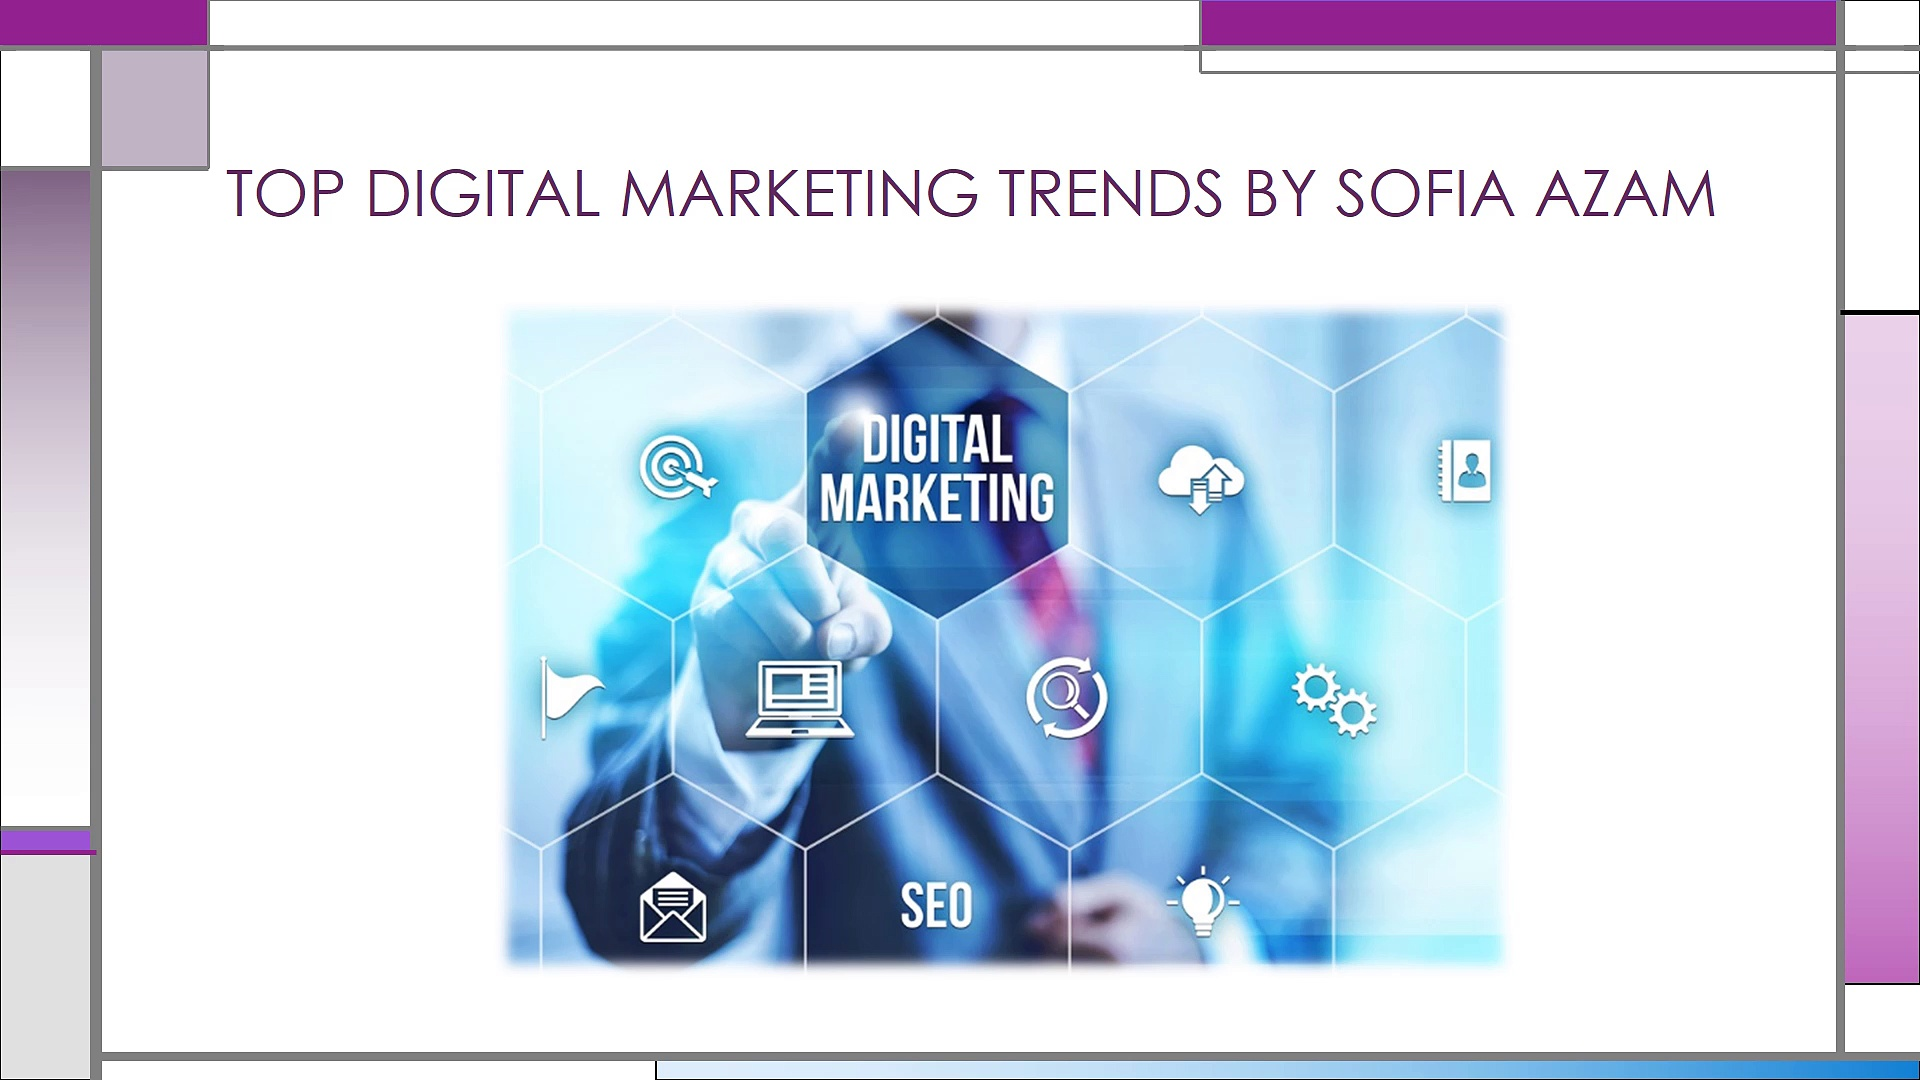 TOP DIGITAL MARKETING TRENDS BY SOFIA AZAM